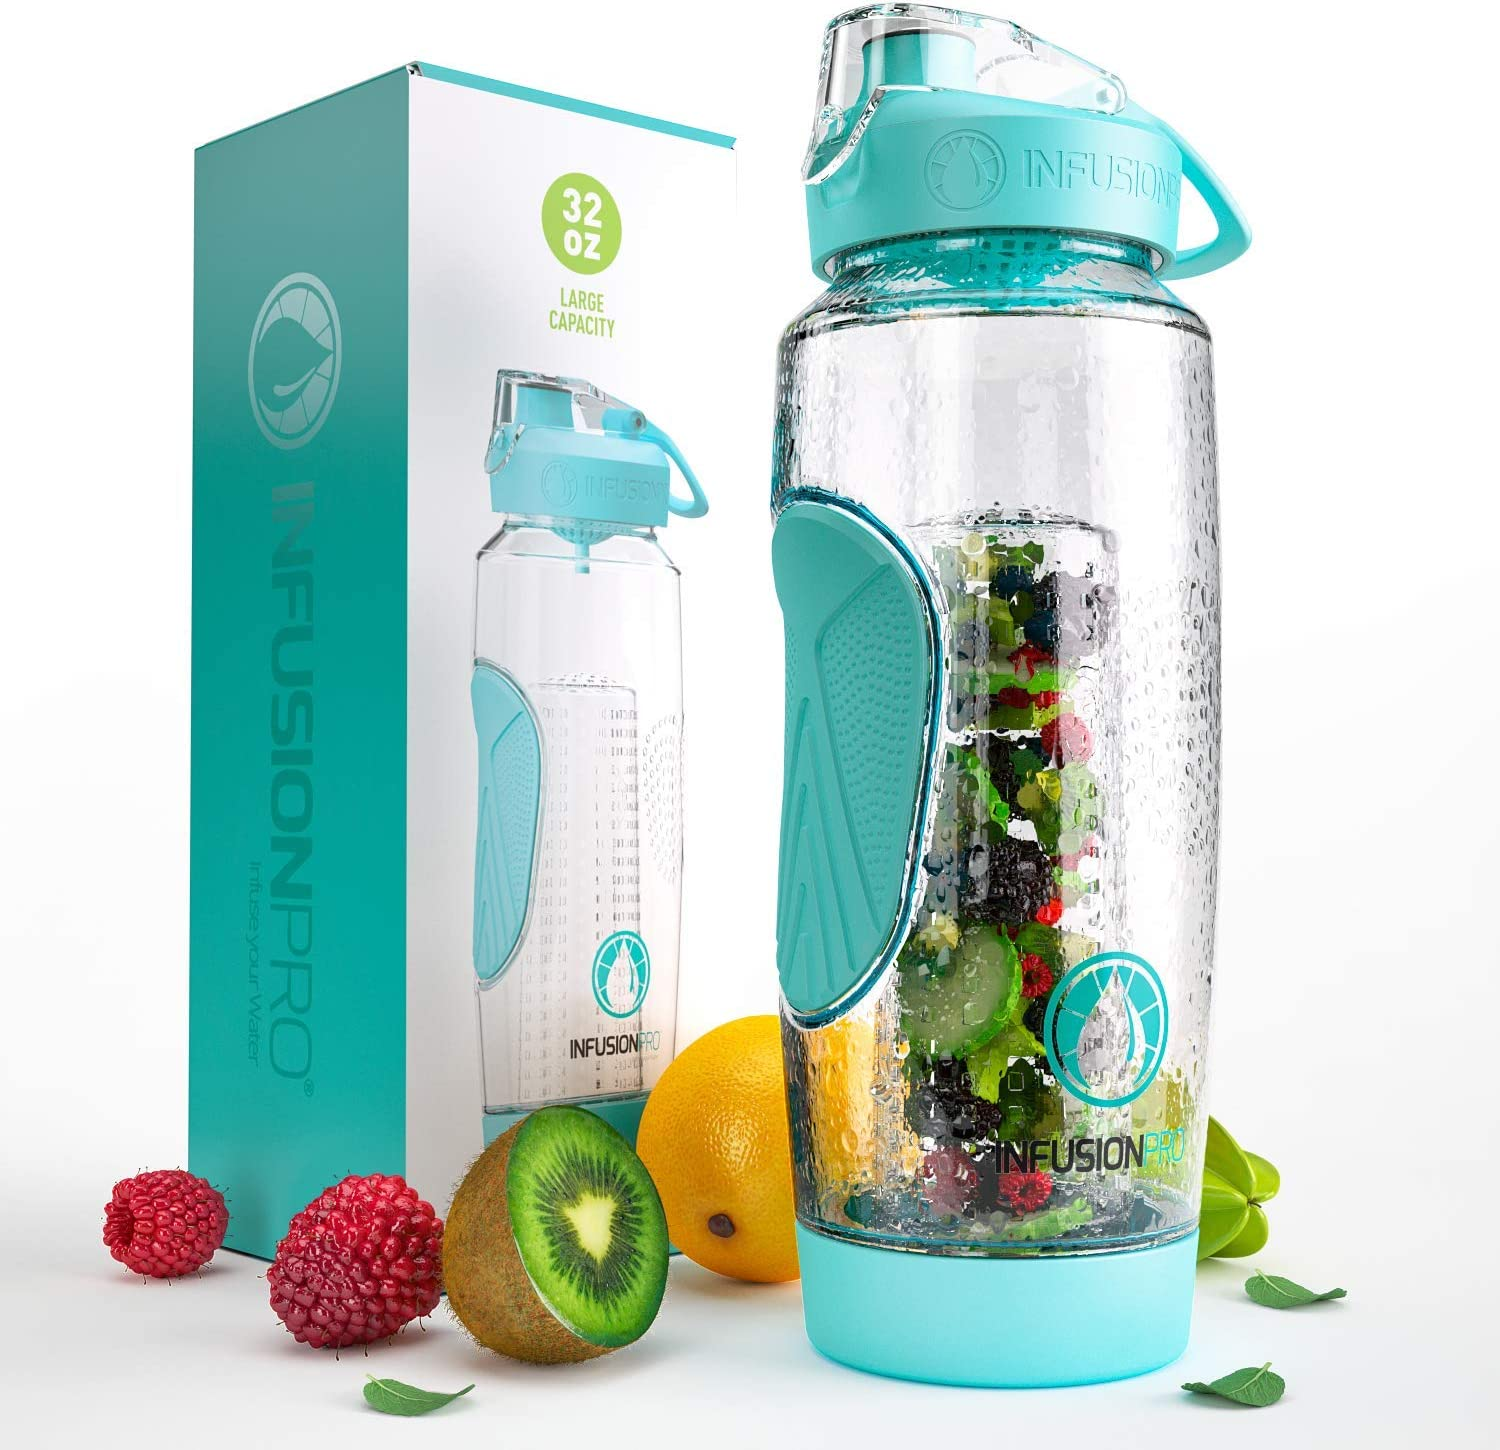 Infusion Pro 32 oz. Fruit Water Bottle Infuser with Insulated Sleeve & Infusion eBook :: Bottom Loading, Large Cage for More Flavor & Pulp Strainer :: Delicious, Healthy Way to Up Your Water Intake